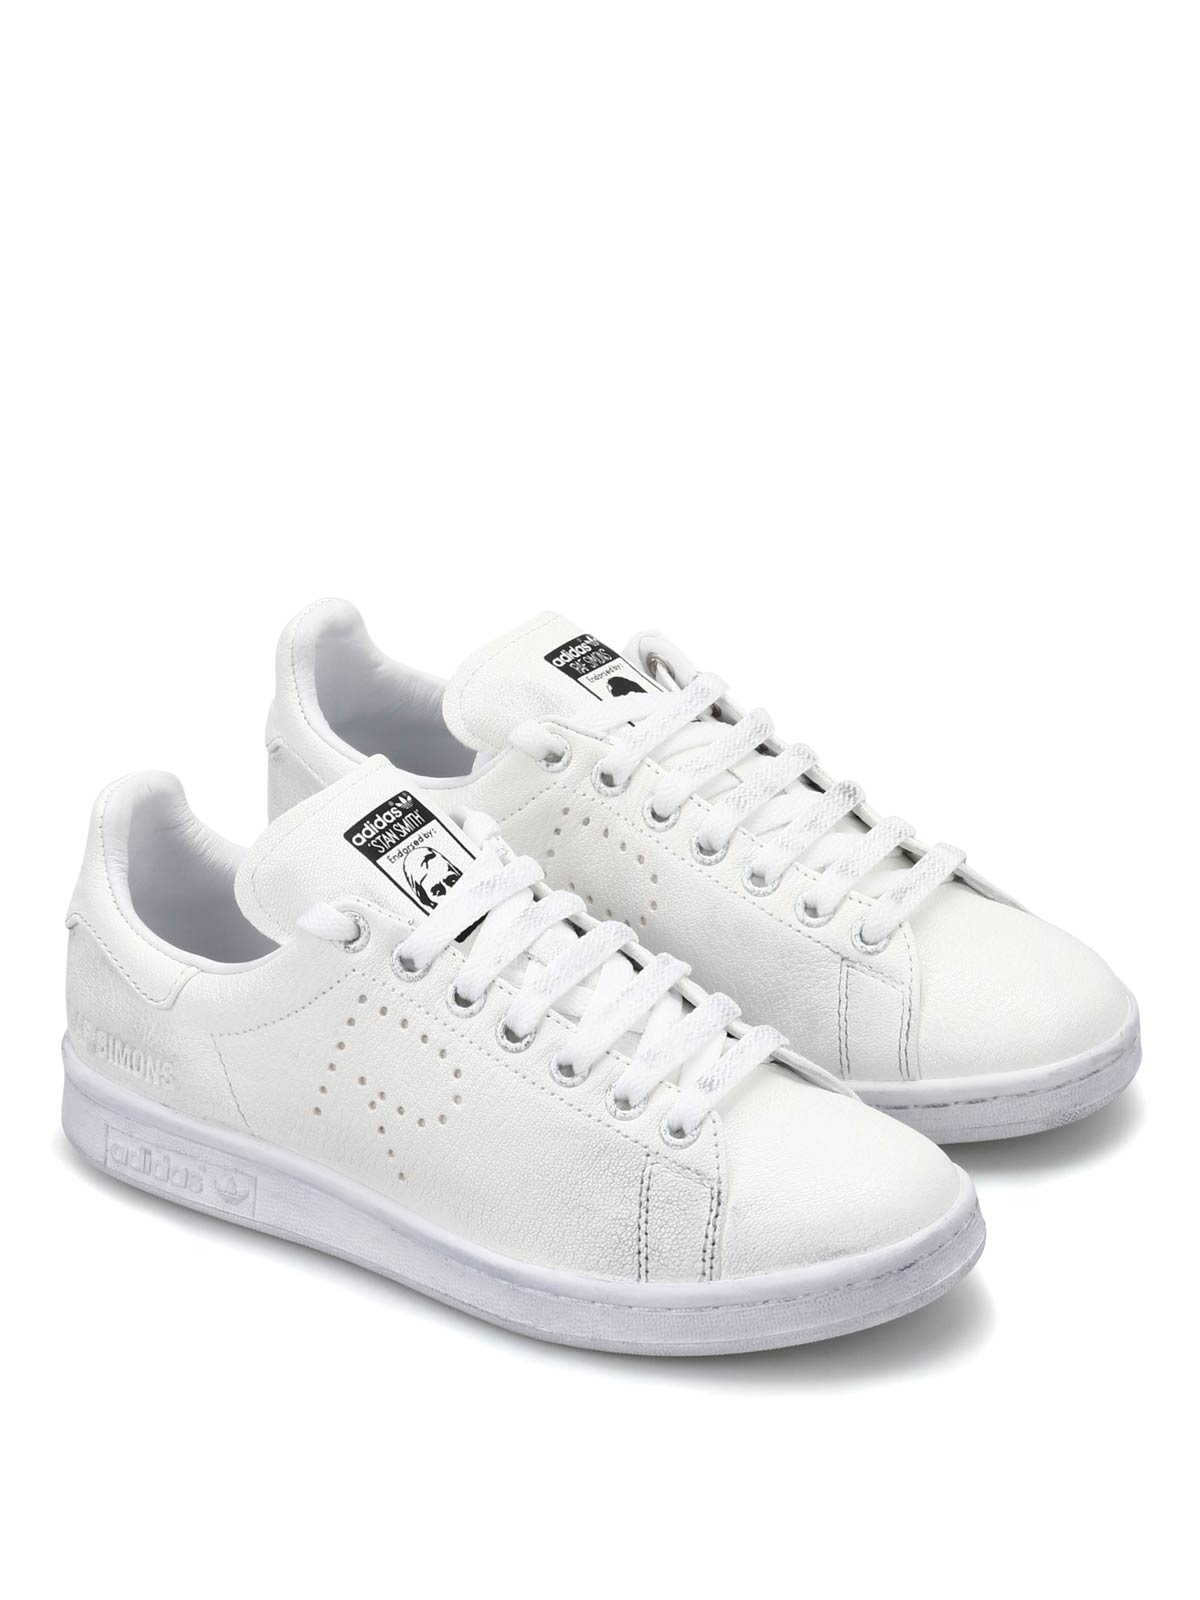 Adidas Raf Simons Stan Smith Aged sneakers Chaussures de